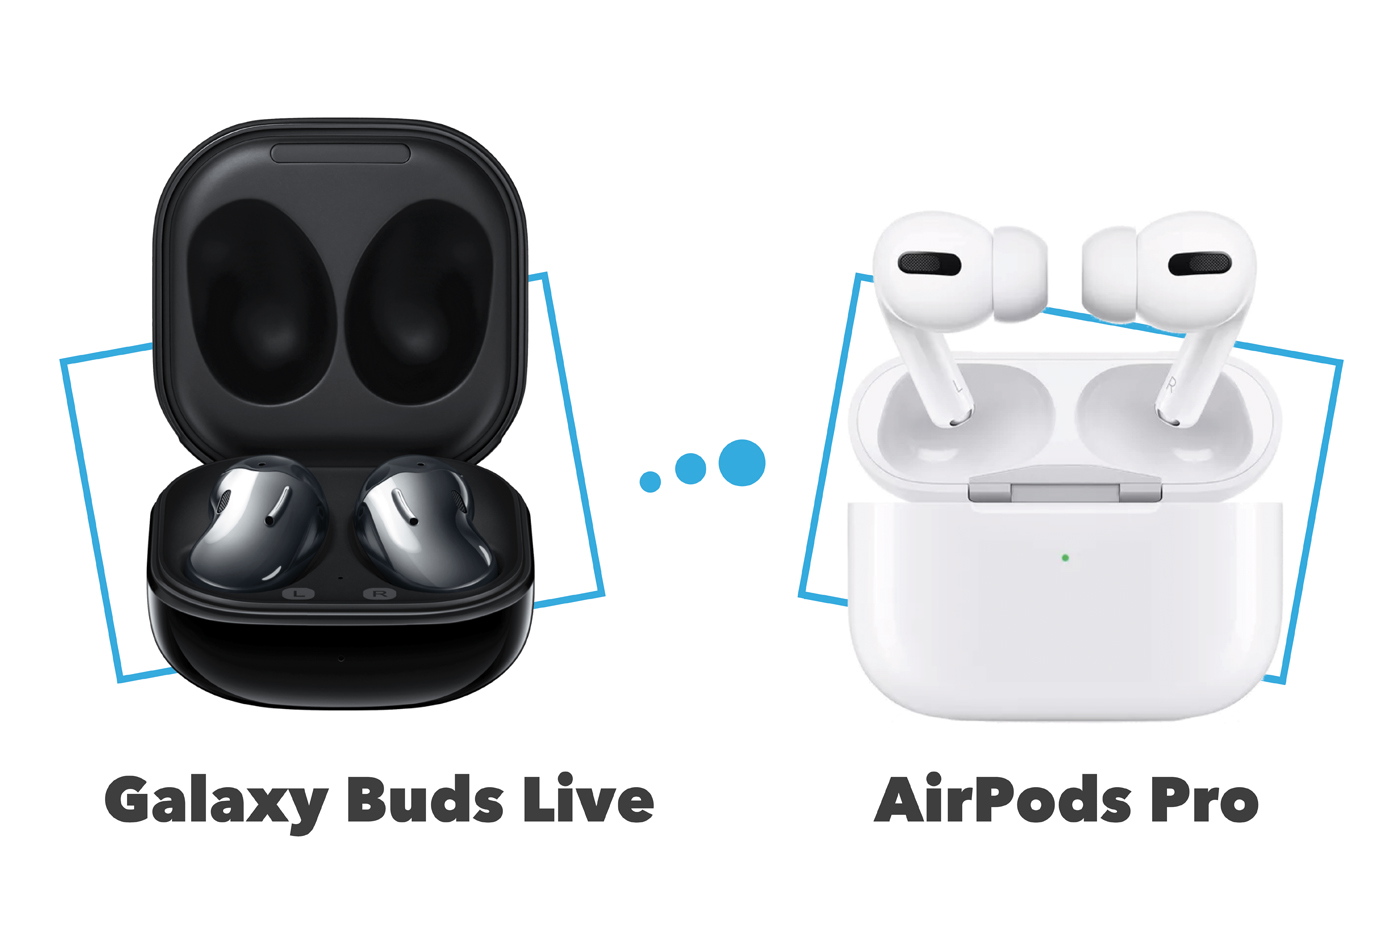 Comparatif Samsung Galaxy Buds Live vs AirPods Pro